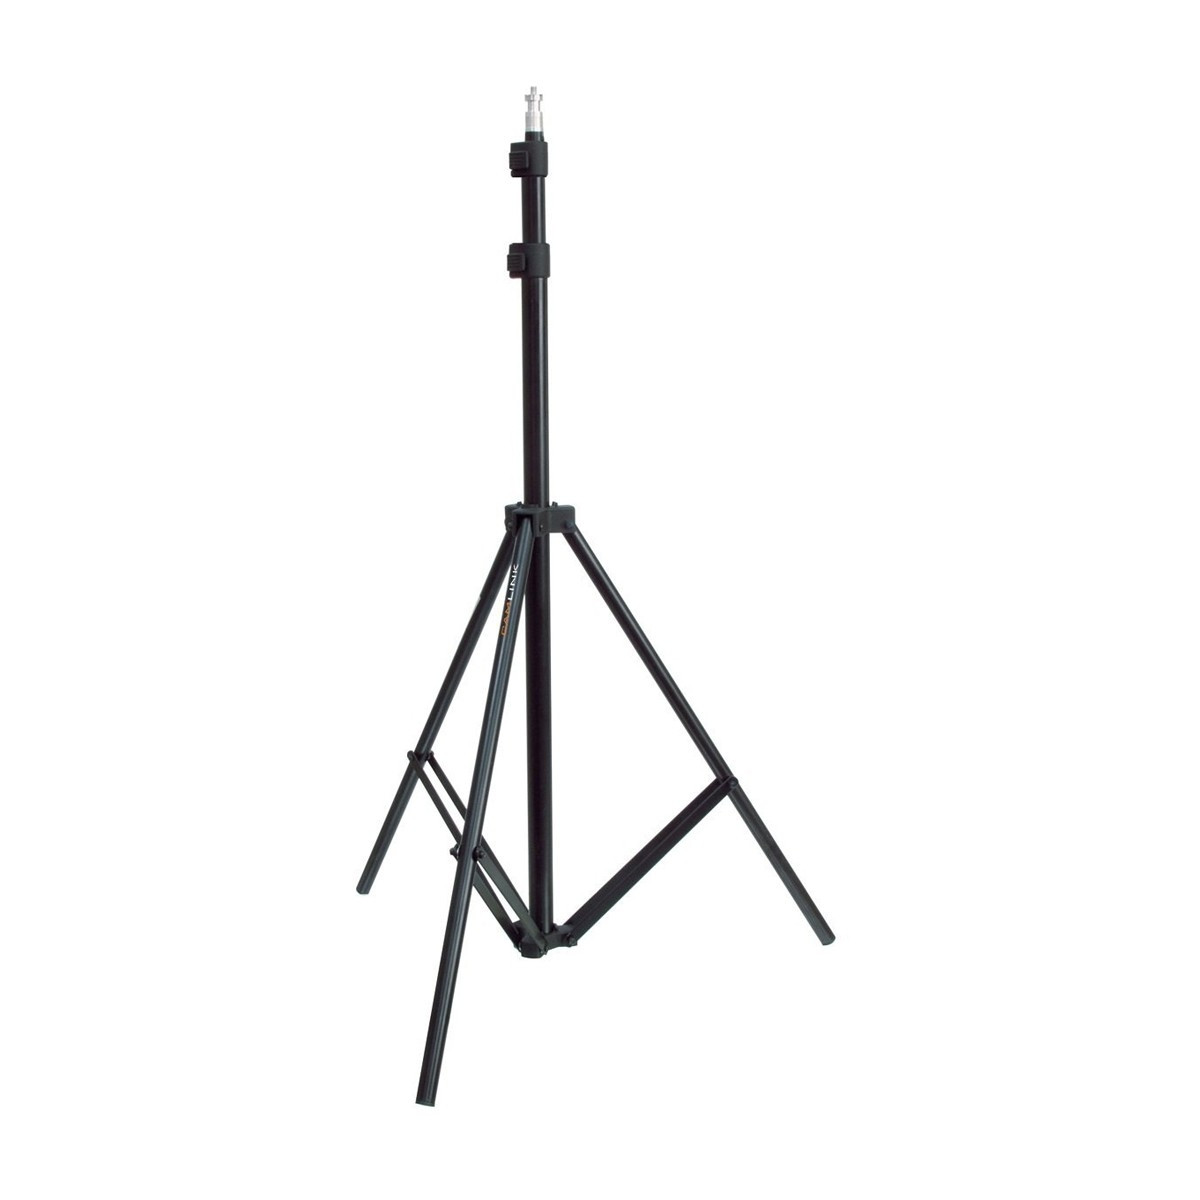 Camlink Ls10 Light Stand